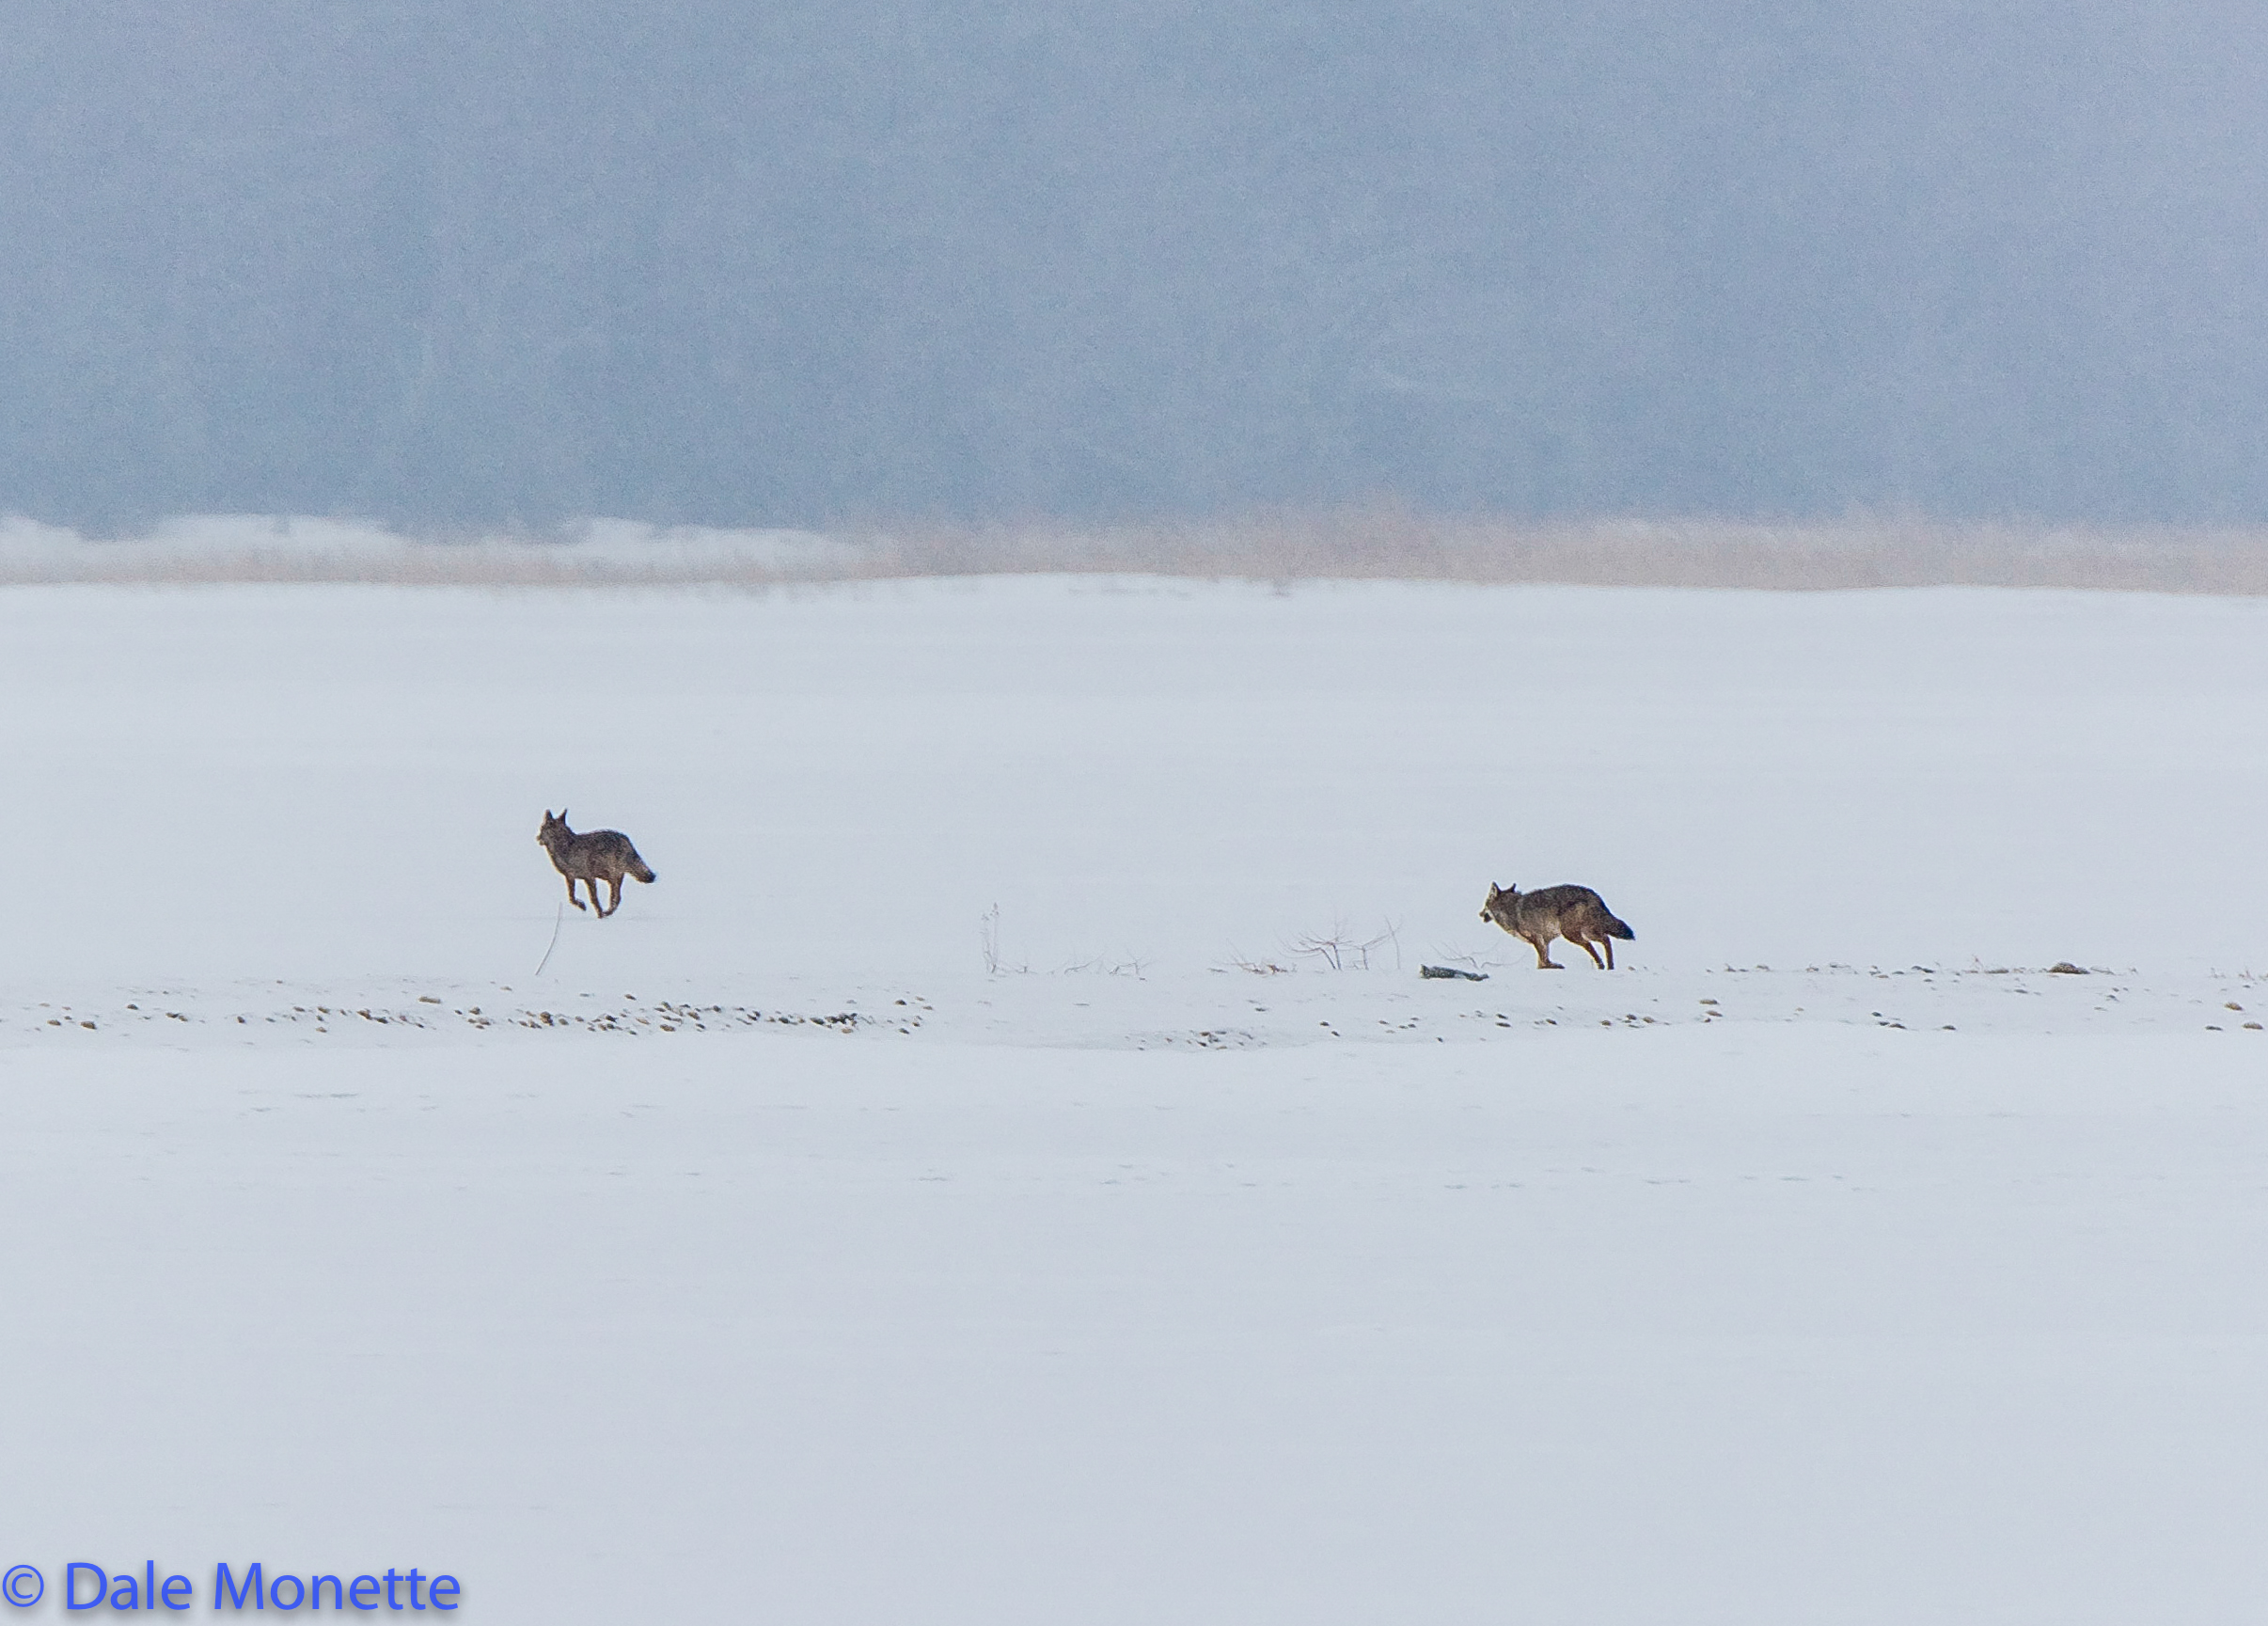 A pair of coyotes take off running through a snow storm across the ice at Quabbin.